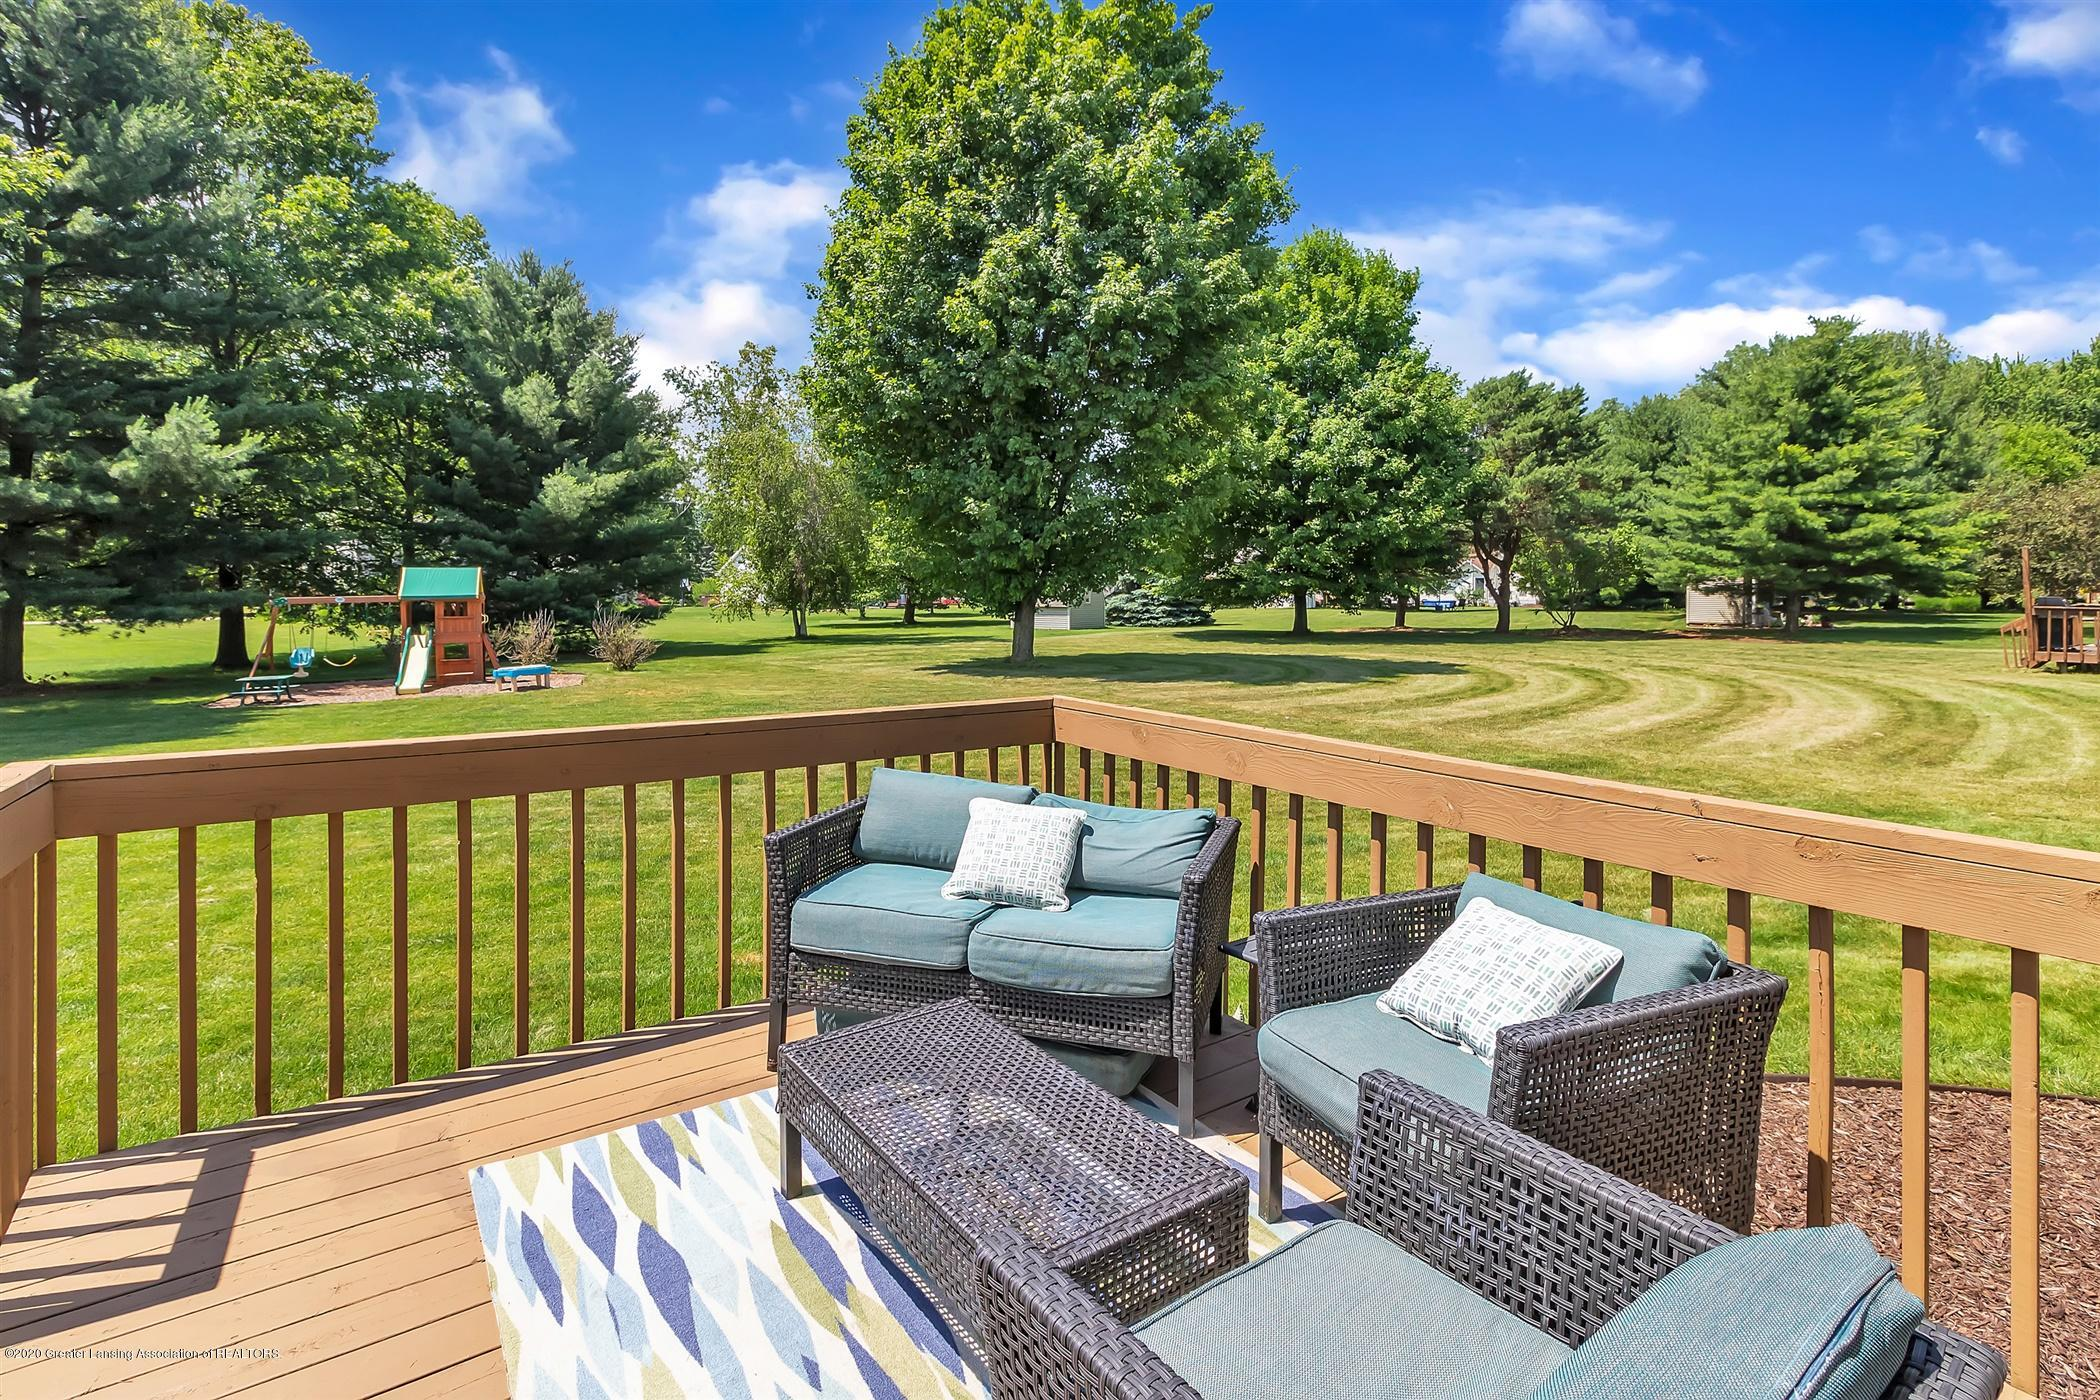 2945 Whistlewood Way - 37-2945Whistlewood-WindowStill-Real - 37